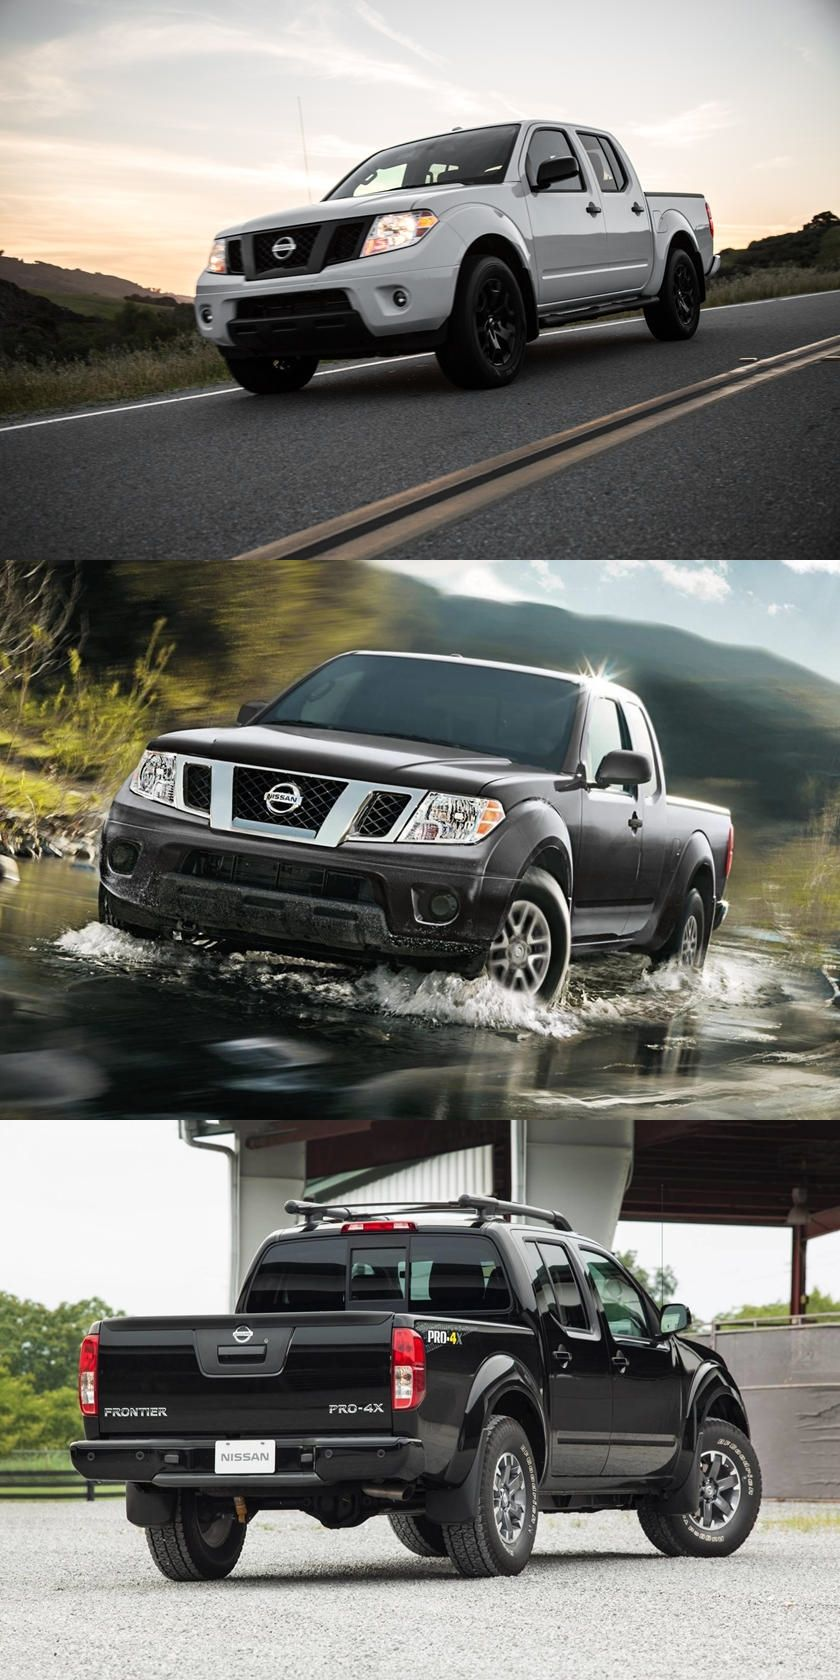 2021 Nissan Frontier Getting Radical Redesign You Won T Recognize The All New Nissan Frontier Nissan Frontier Nissan New Nissan Titan